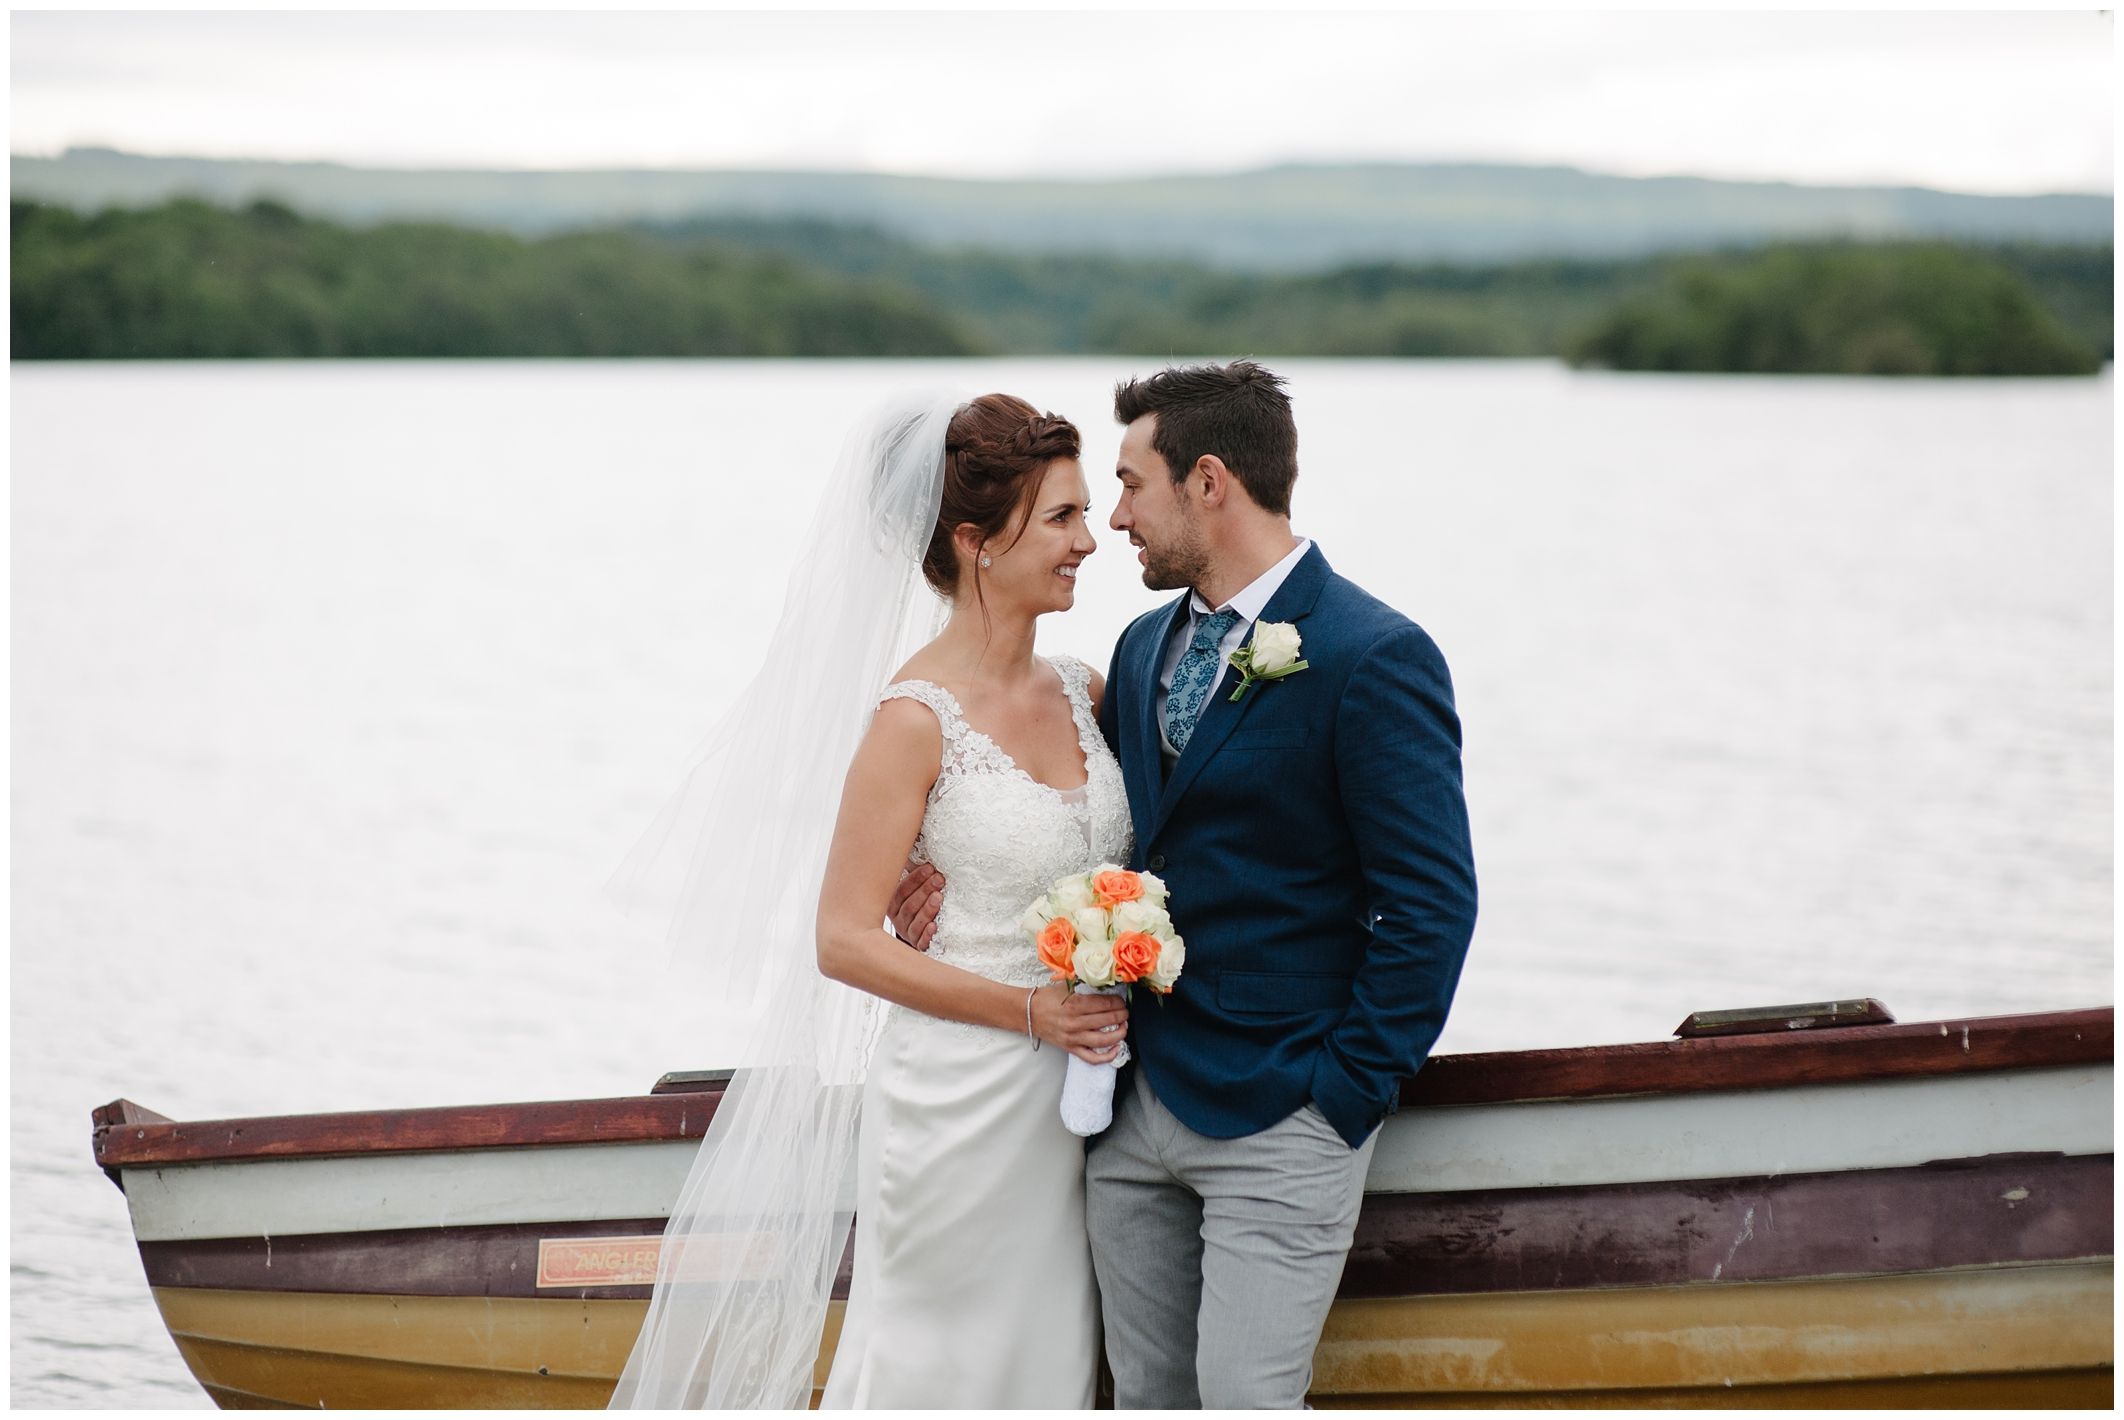 Lynsey_Andy_Rossharbour_Fermanagh_wedding_jude_browne_photography_0098.jpg